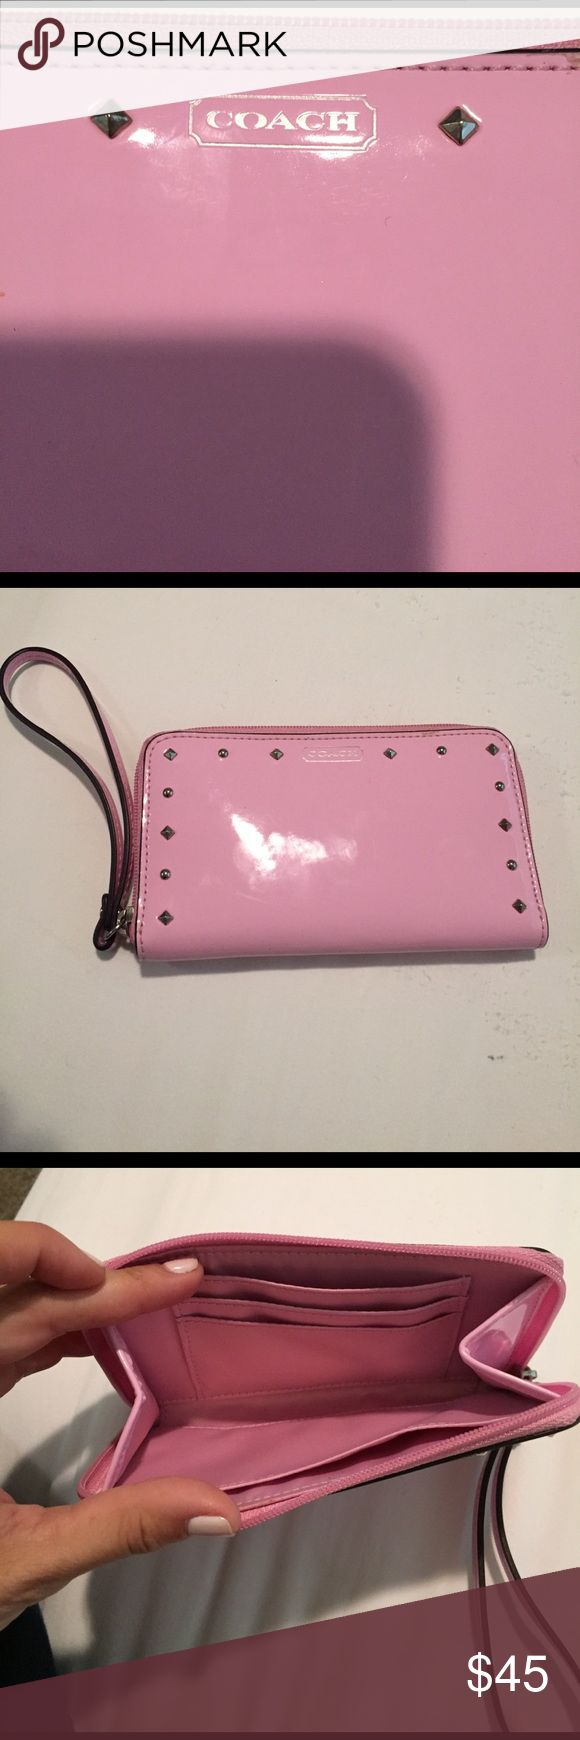 Coach wristlets/ wallet Coach wristlet/ wallet Pink with silver grommets. Excellent condition used maybe twice. Coach Bags Clutches & Wristlets